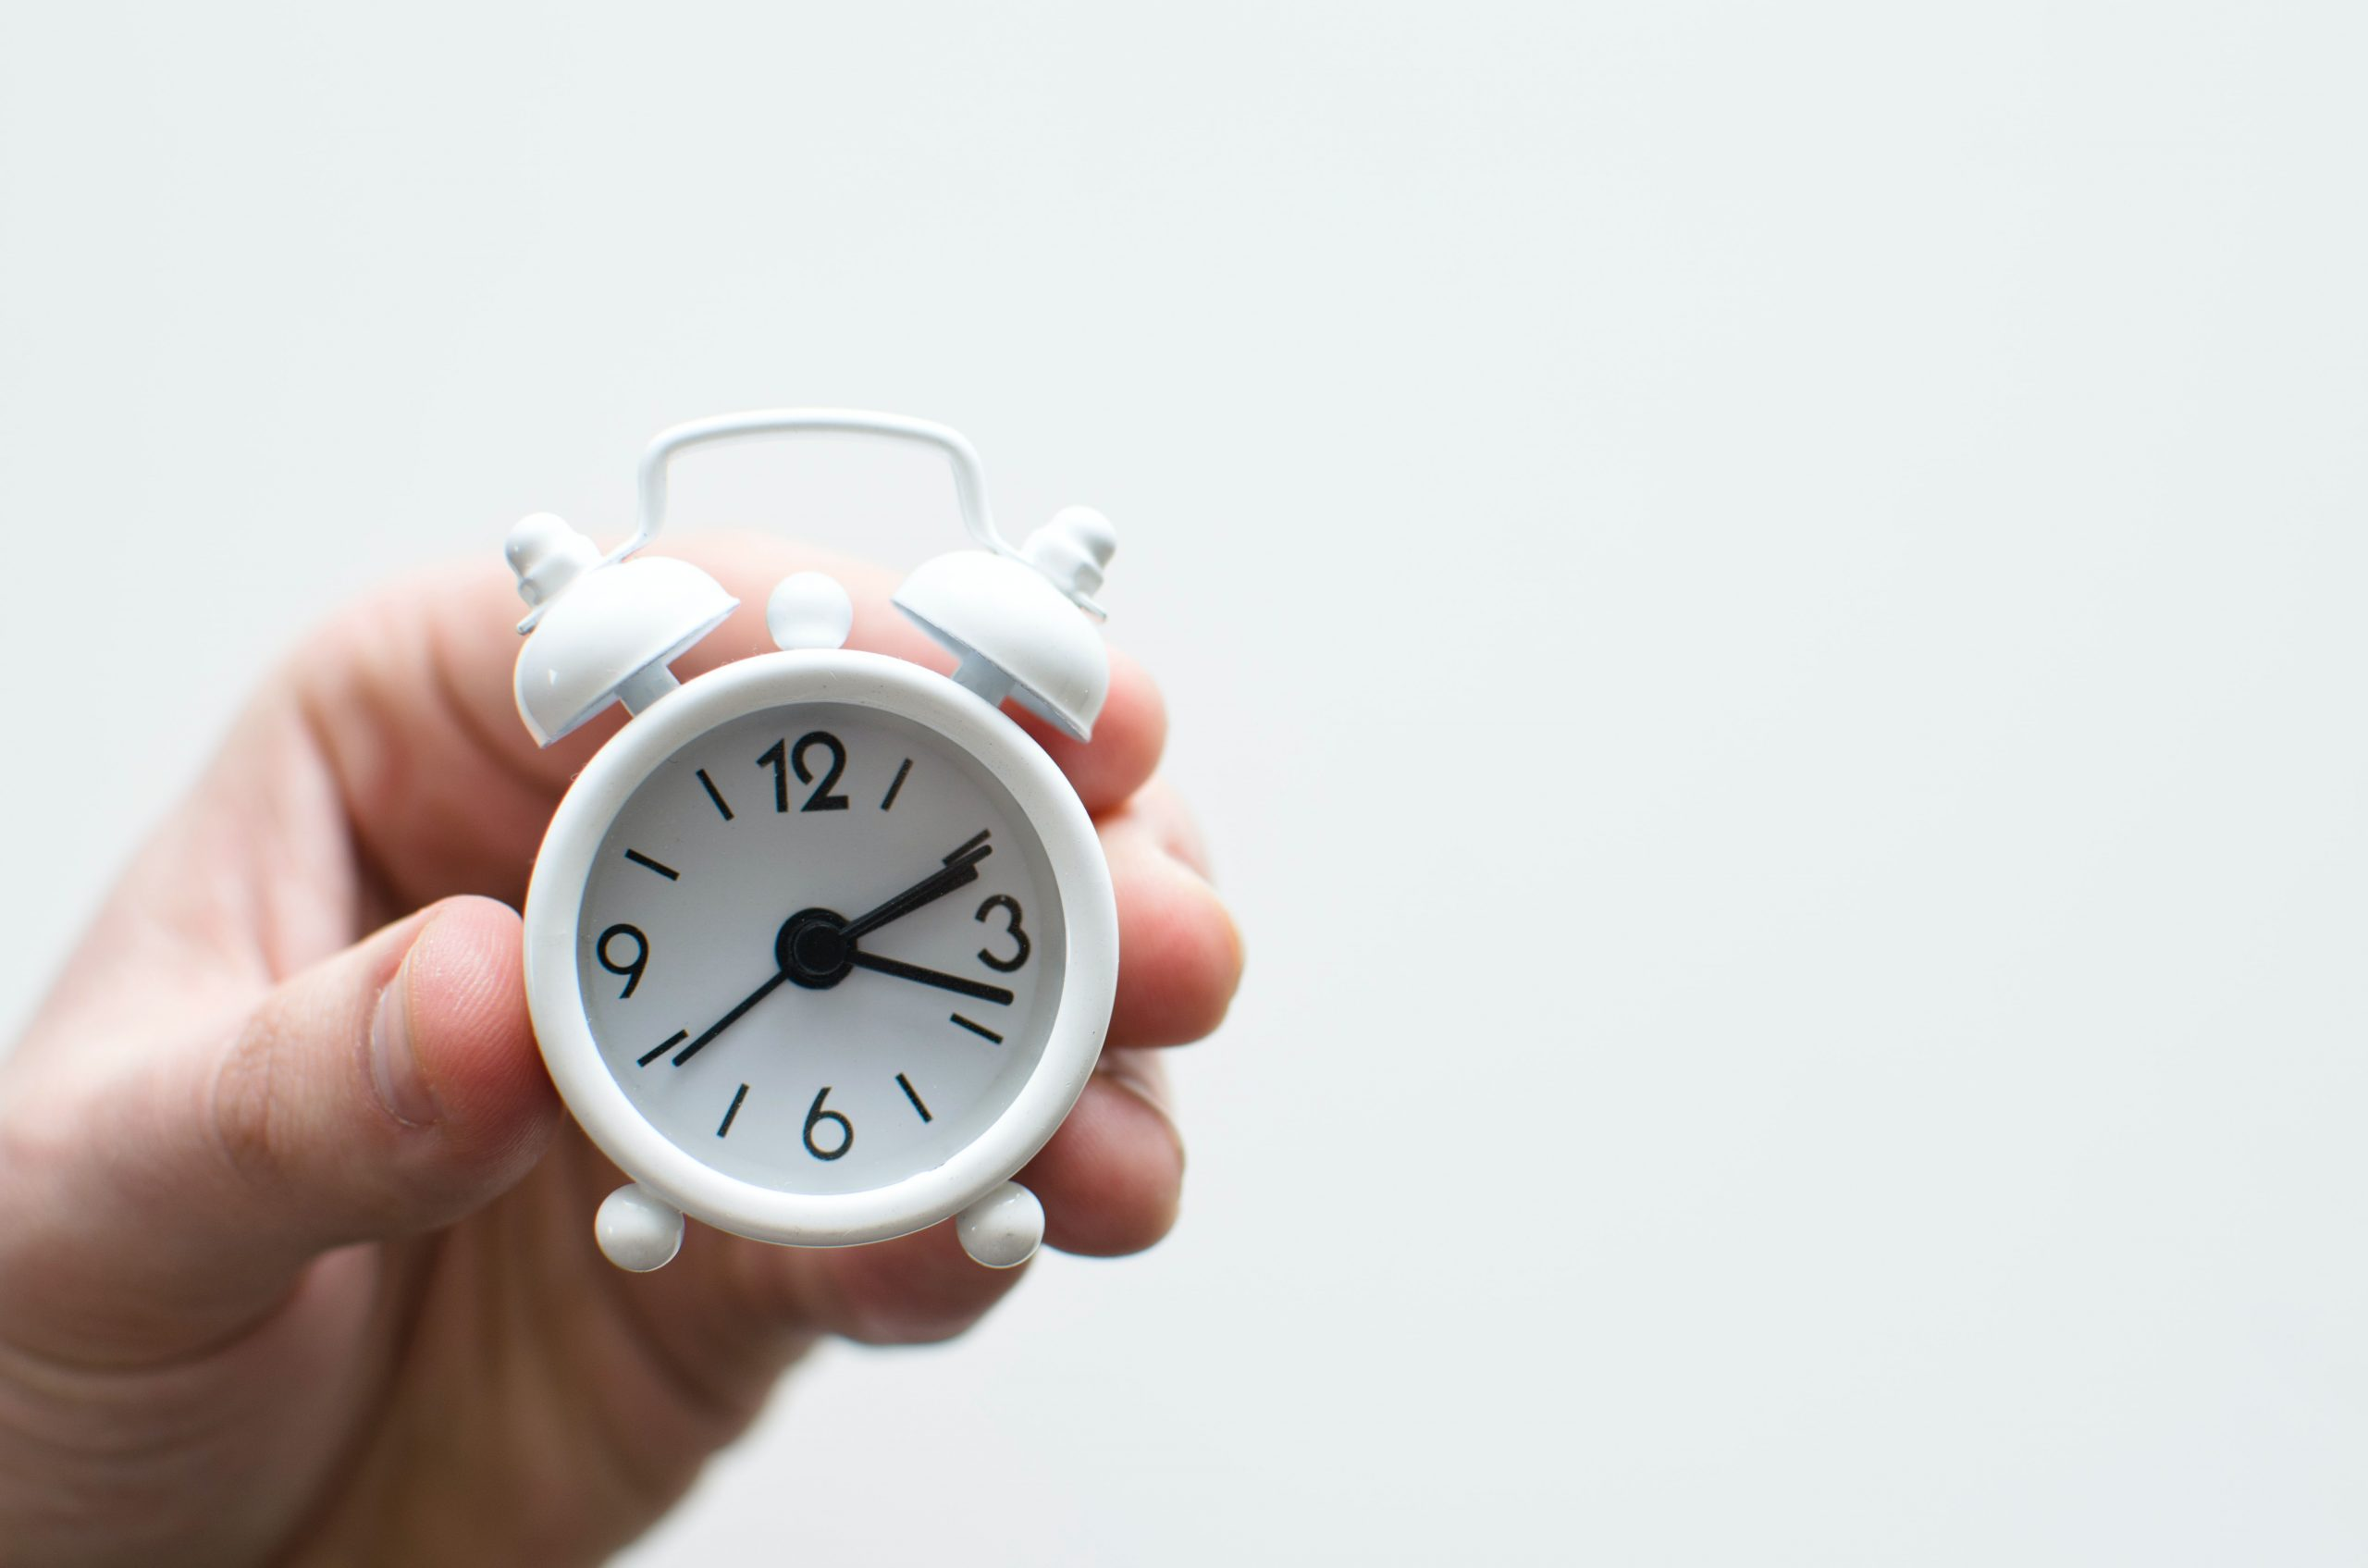 alarm clocking being held by a hand